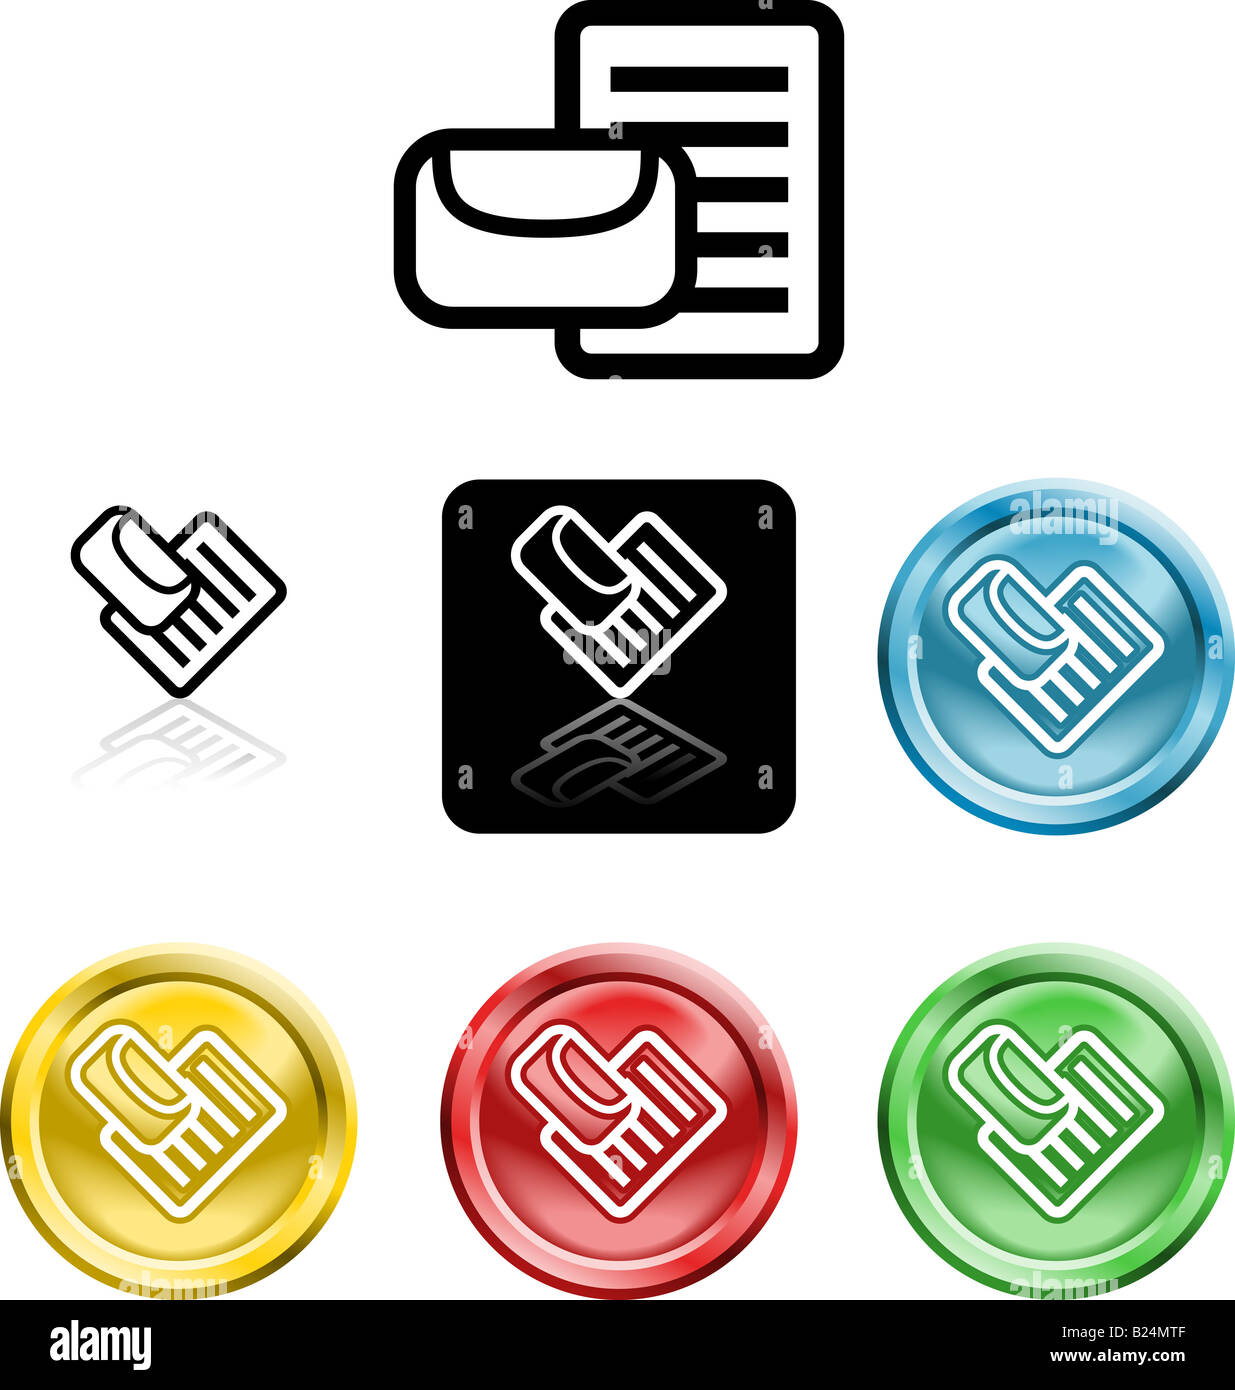 Several versions of an icon symbol of a stylised envelope and letter - Stock Image